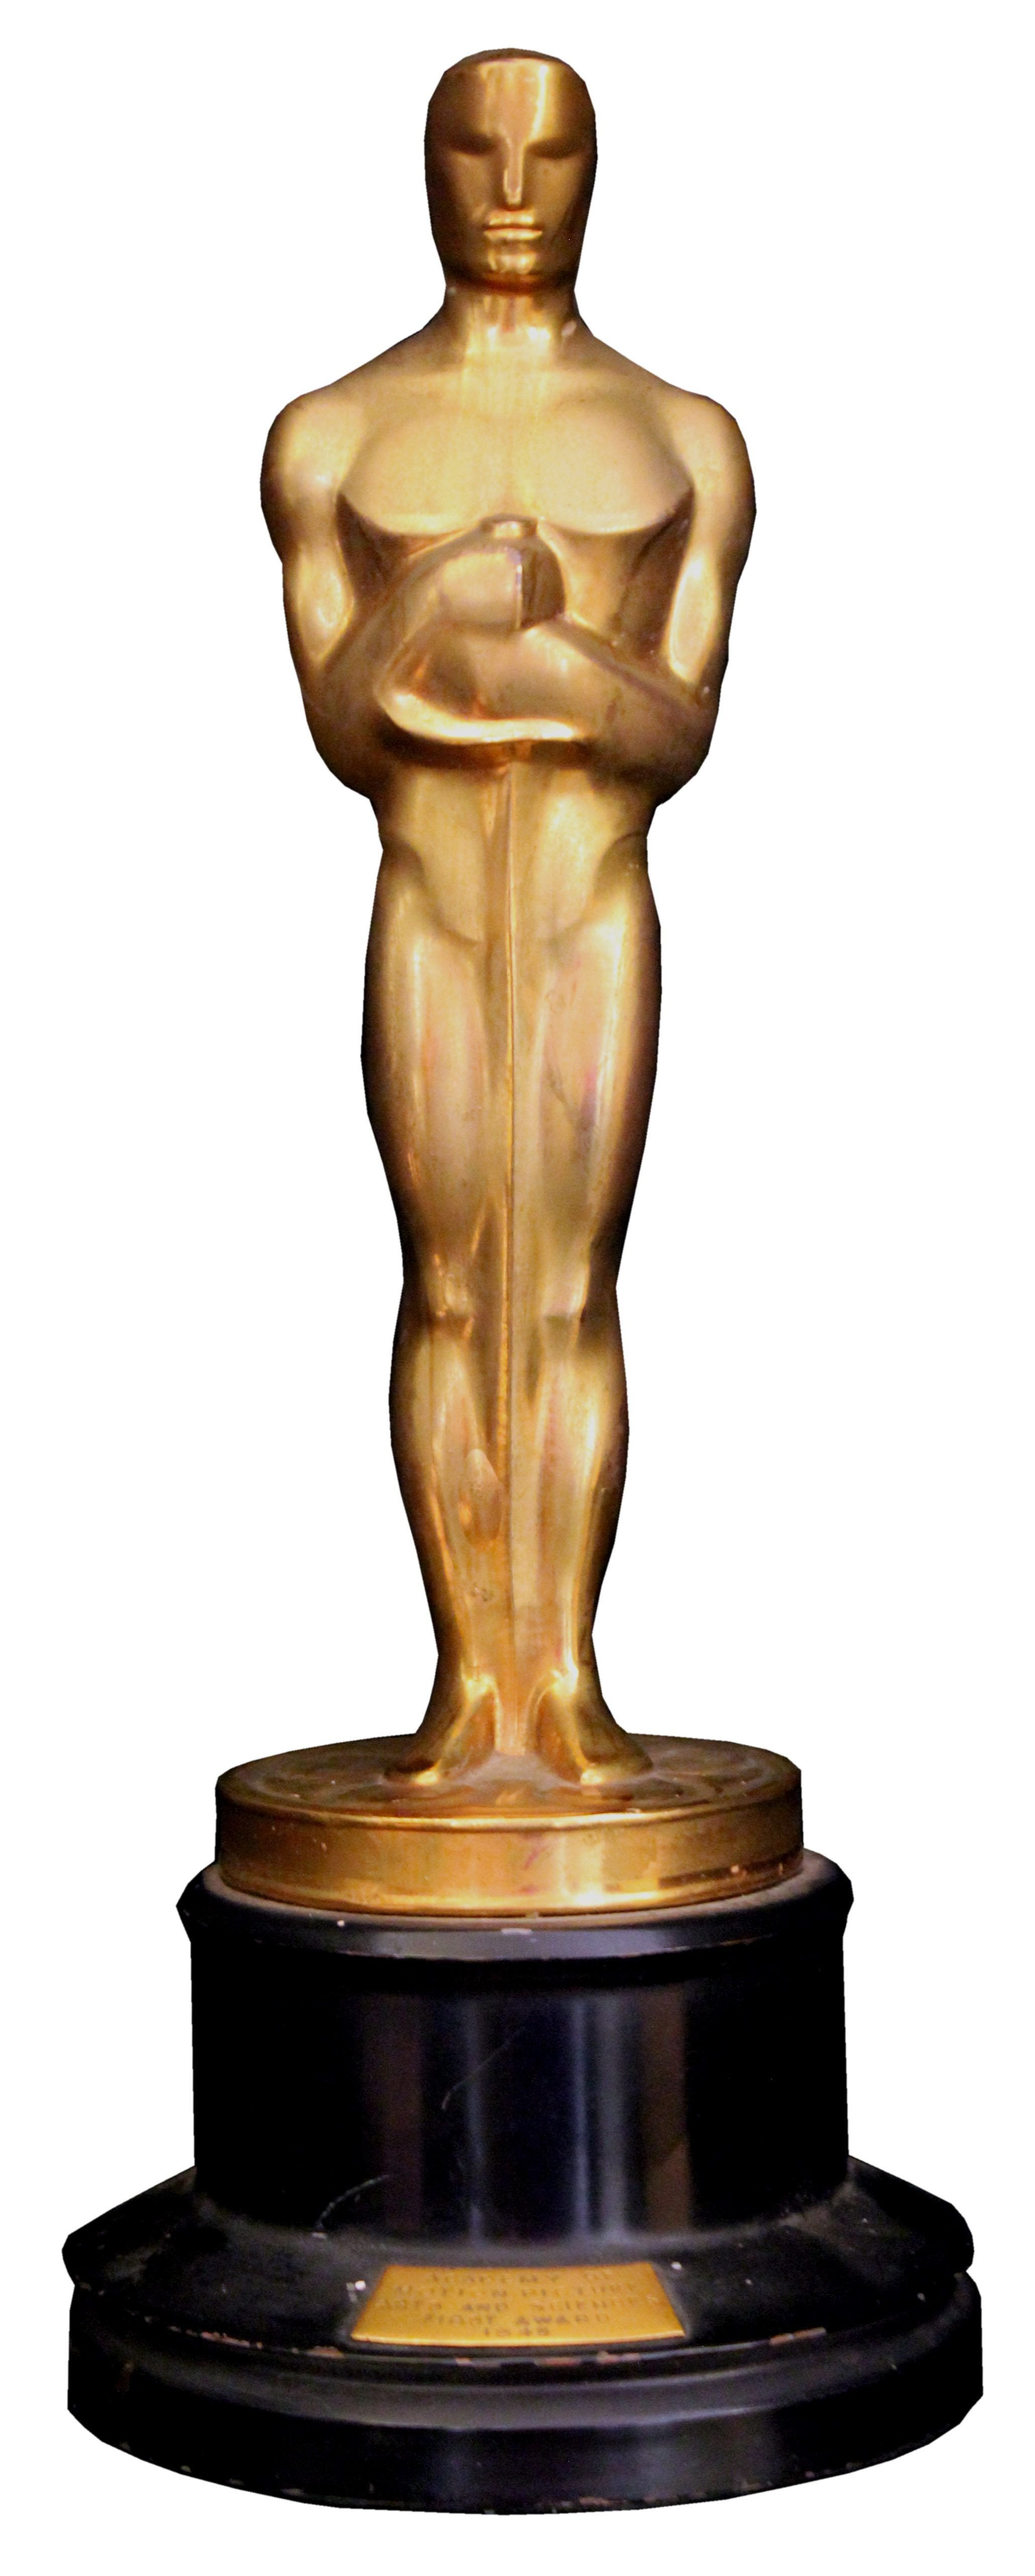 Oscar Statue Template Trophy Clipart Academy Award Pencil and In Color Trophy